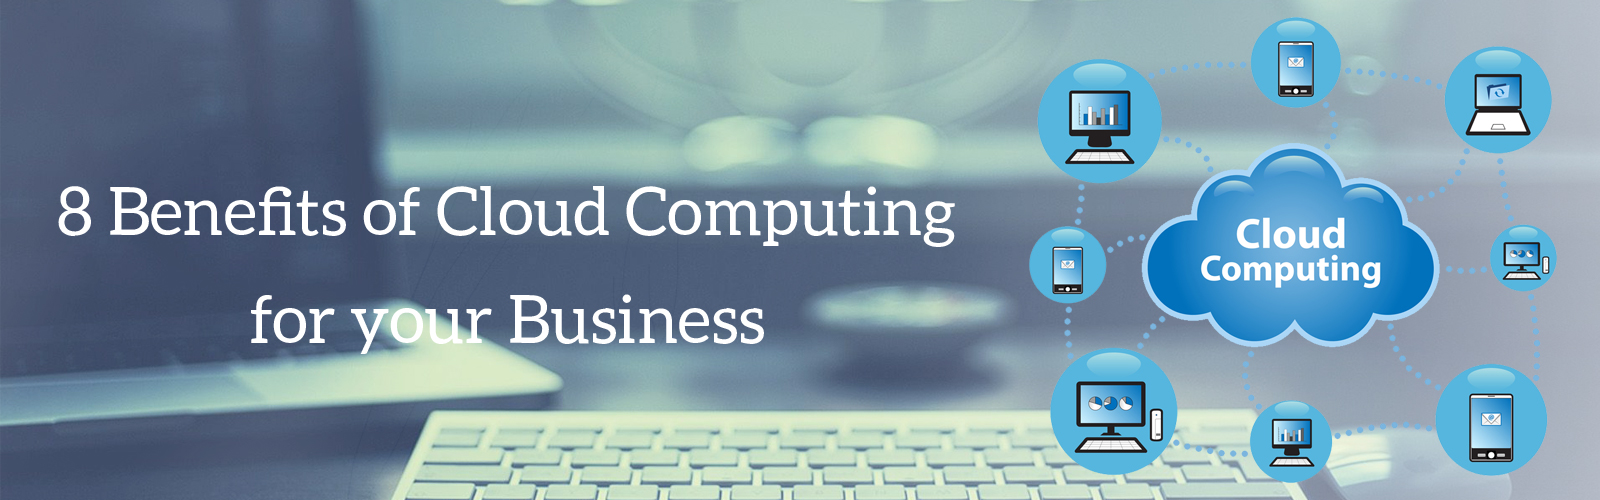 8 Benefits of cloud computing